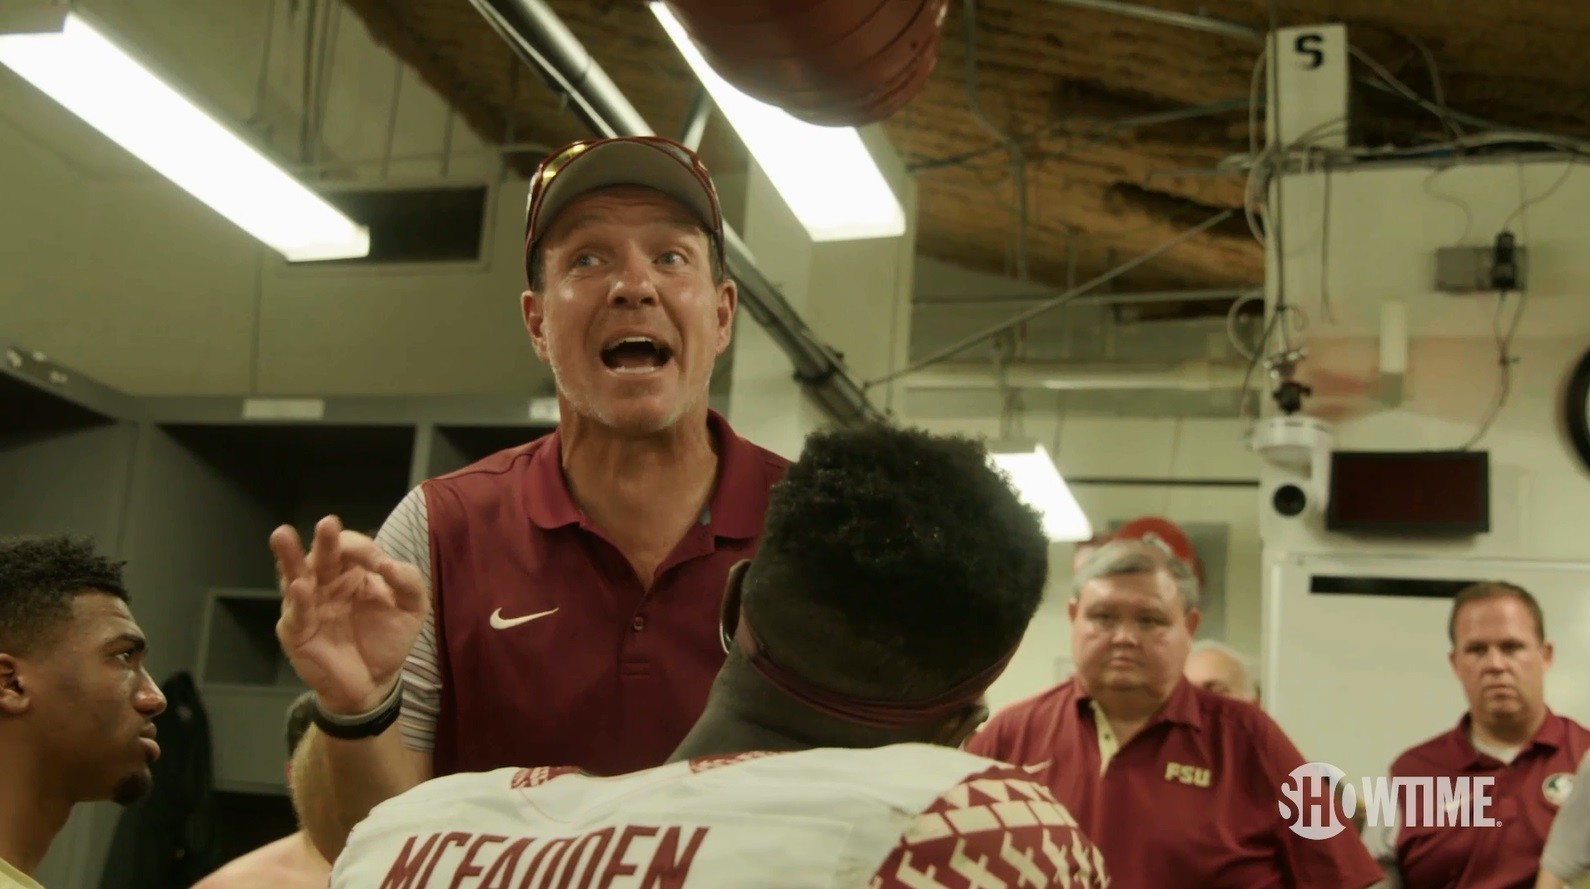 Os-despite-lsu-chatter-jimbo-fisher-plans-on-being-at-fsu-for-a-long-time-20160928